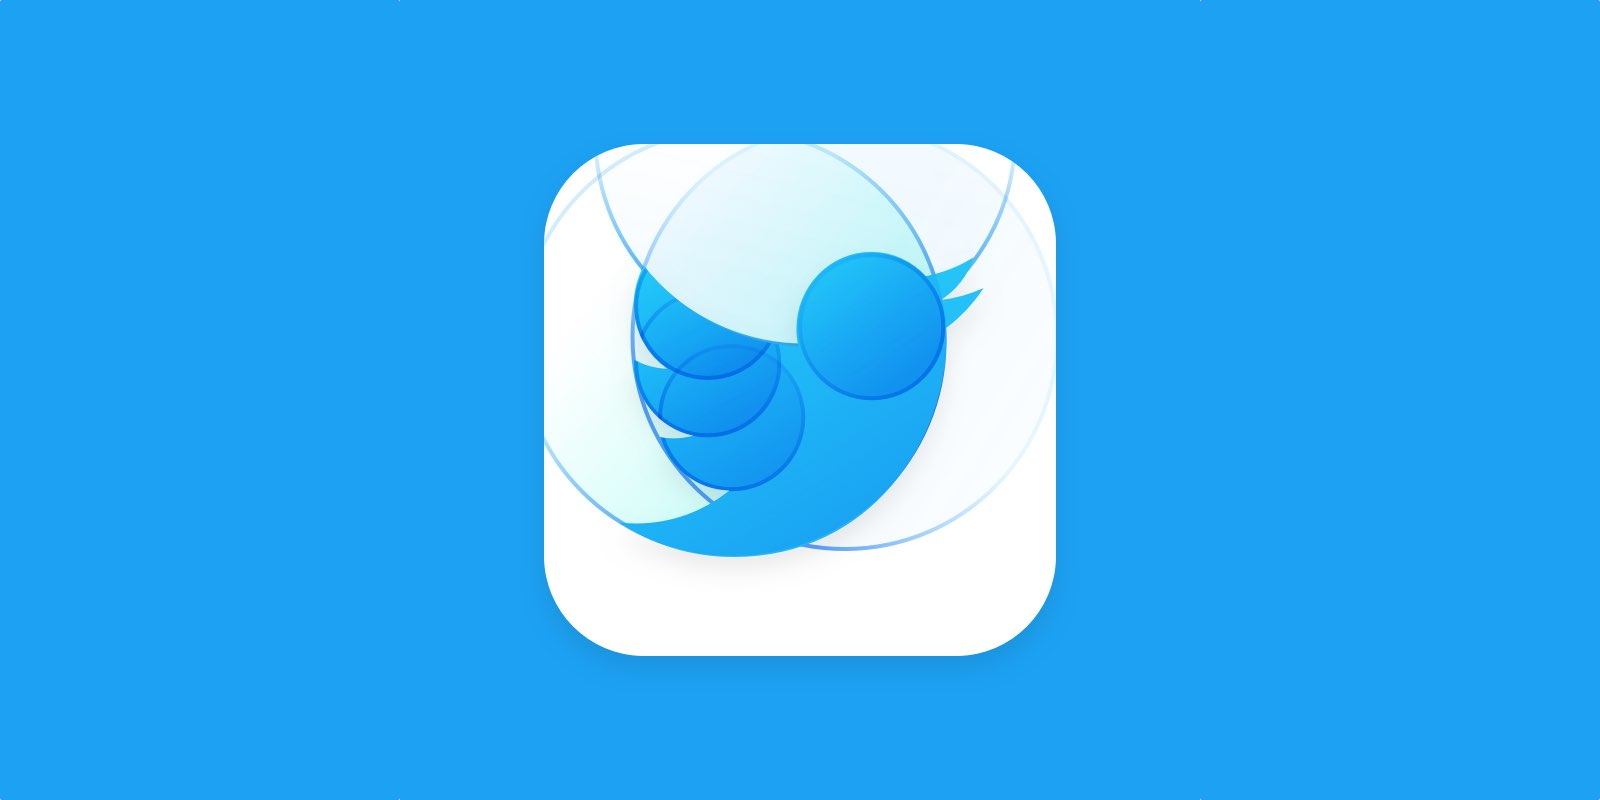 You can now help beta-test unreleased new features in Twitter for iPhone and iPad